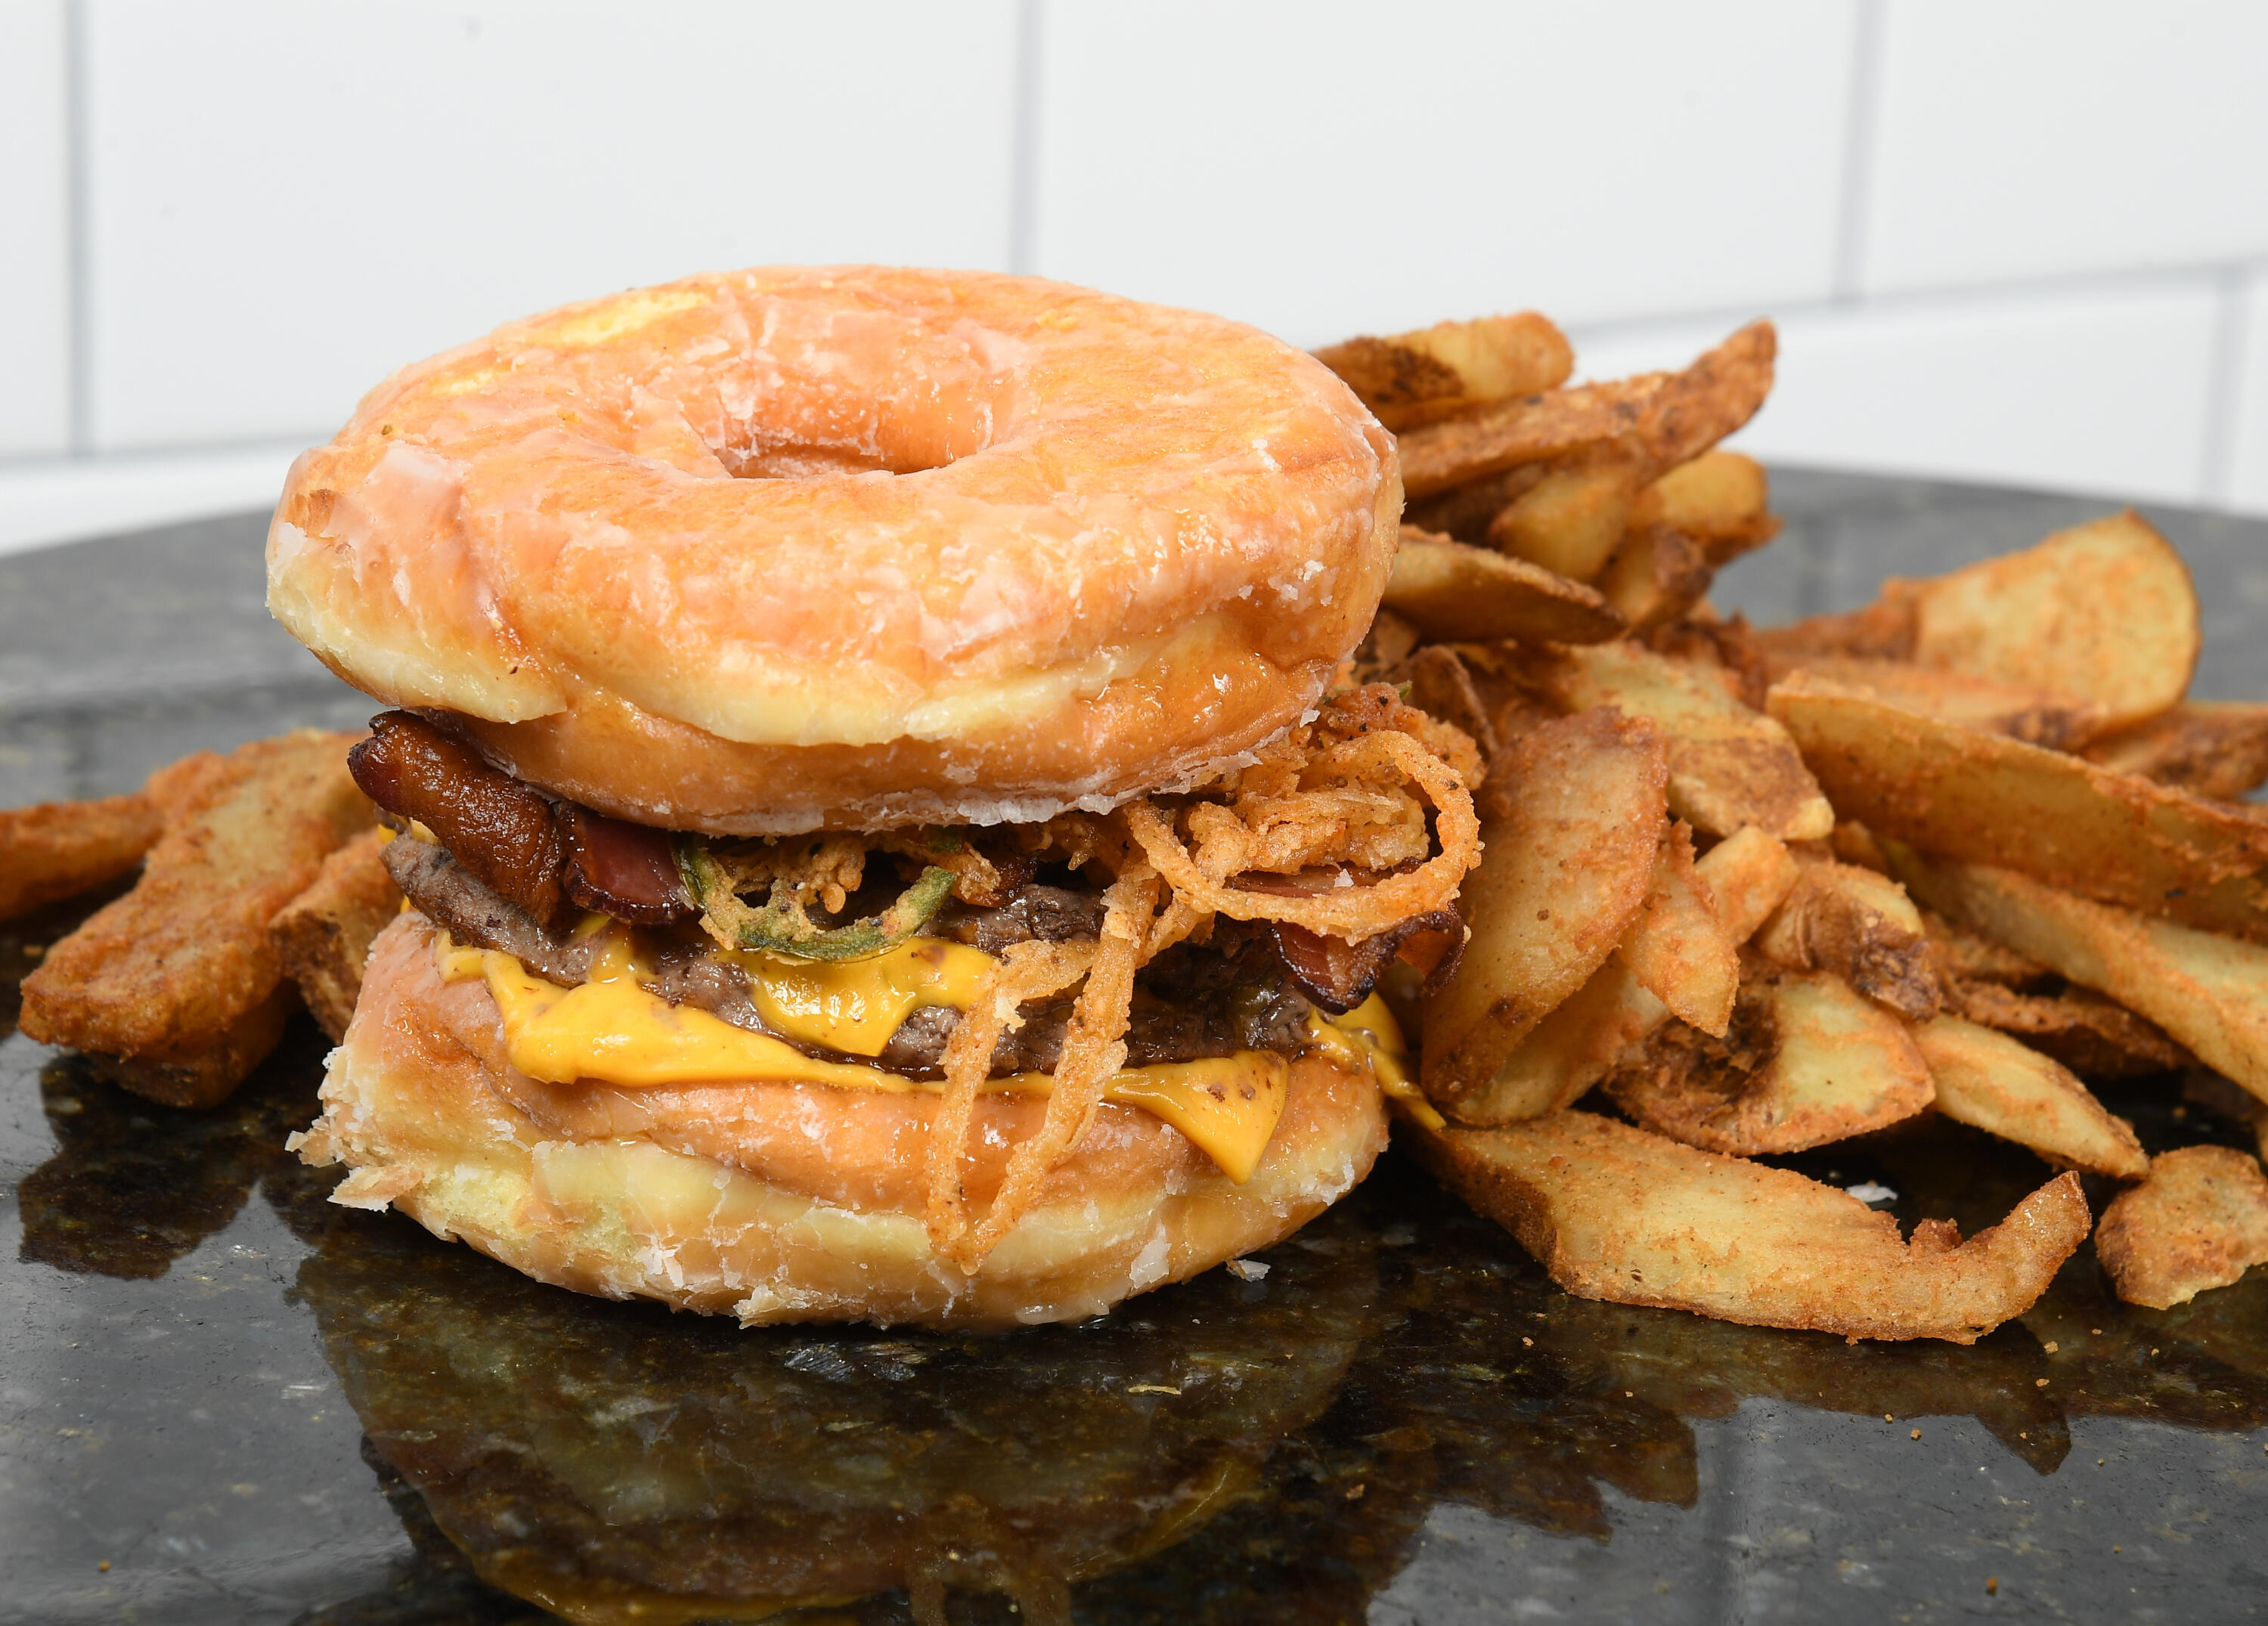 Photos: Doughnut Burger, Fried Oreos, And More Coming To TD Garden